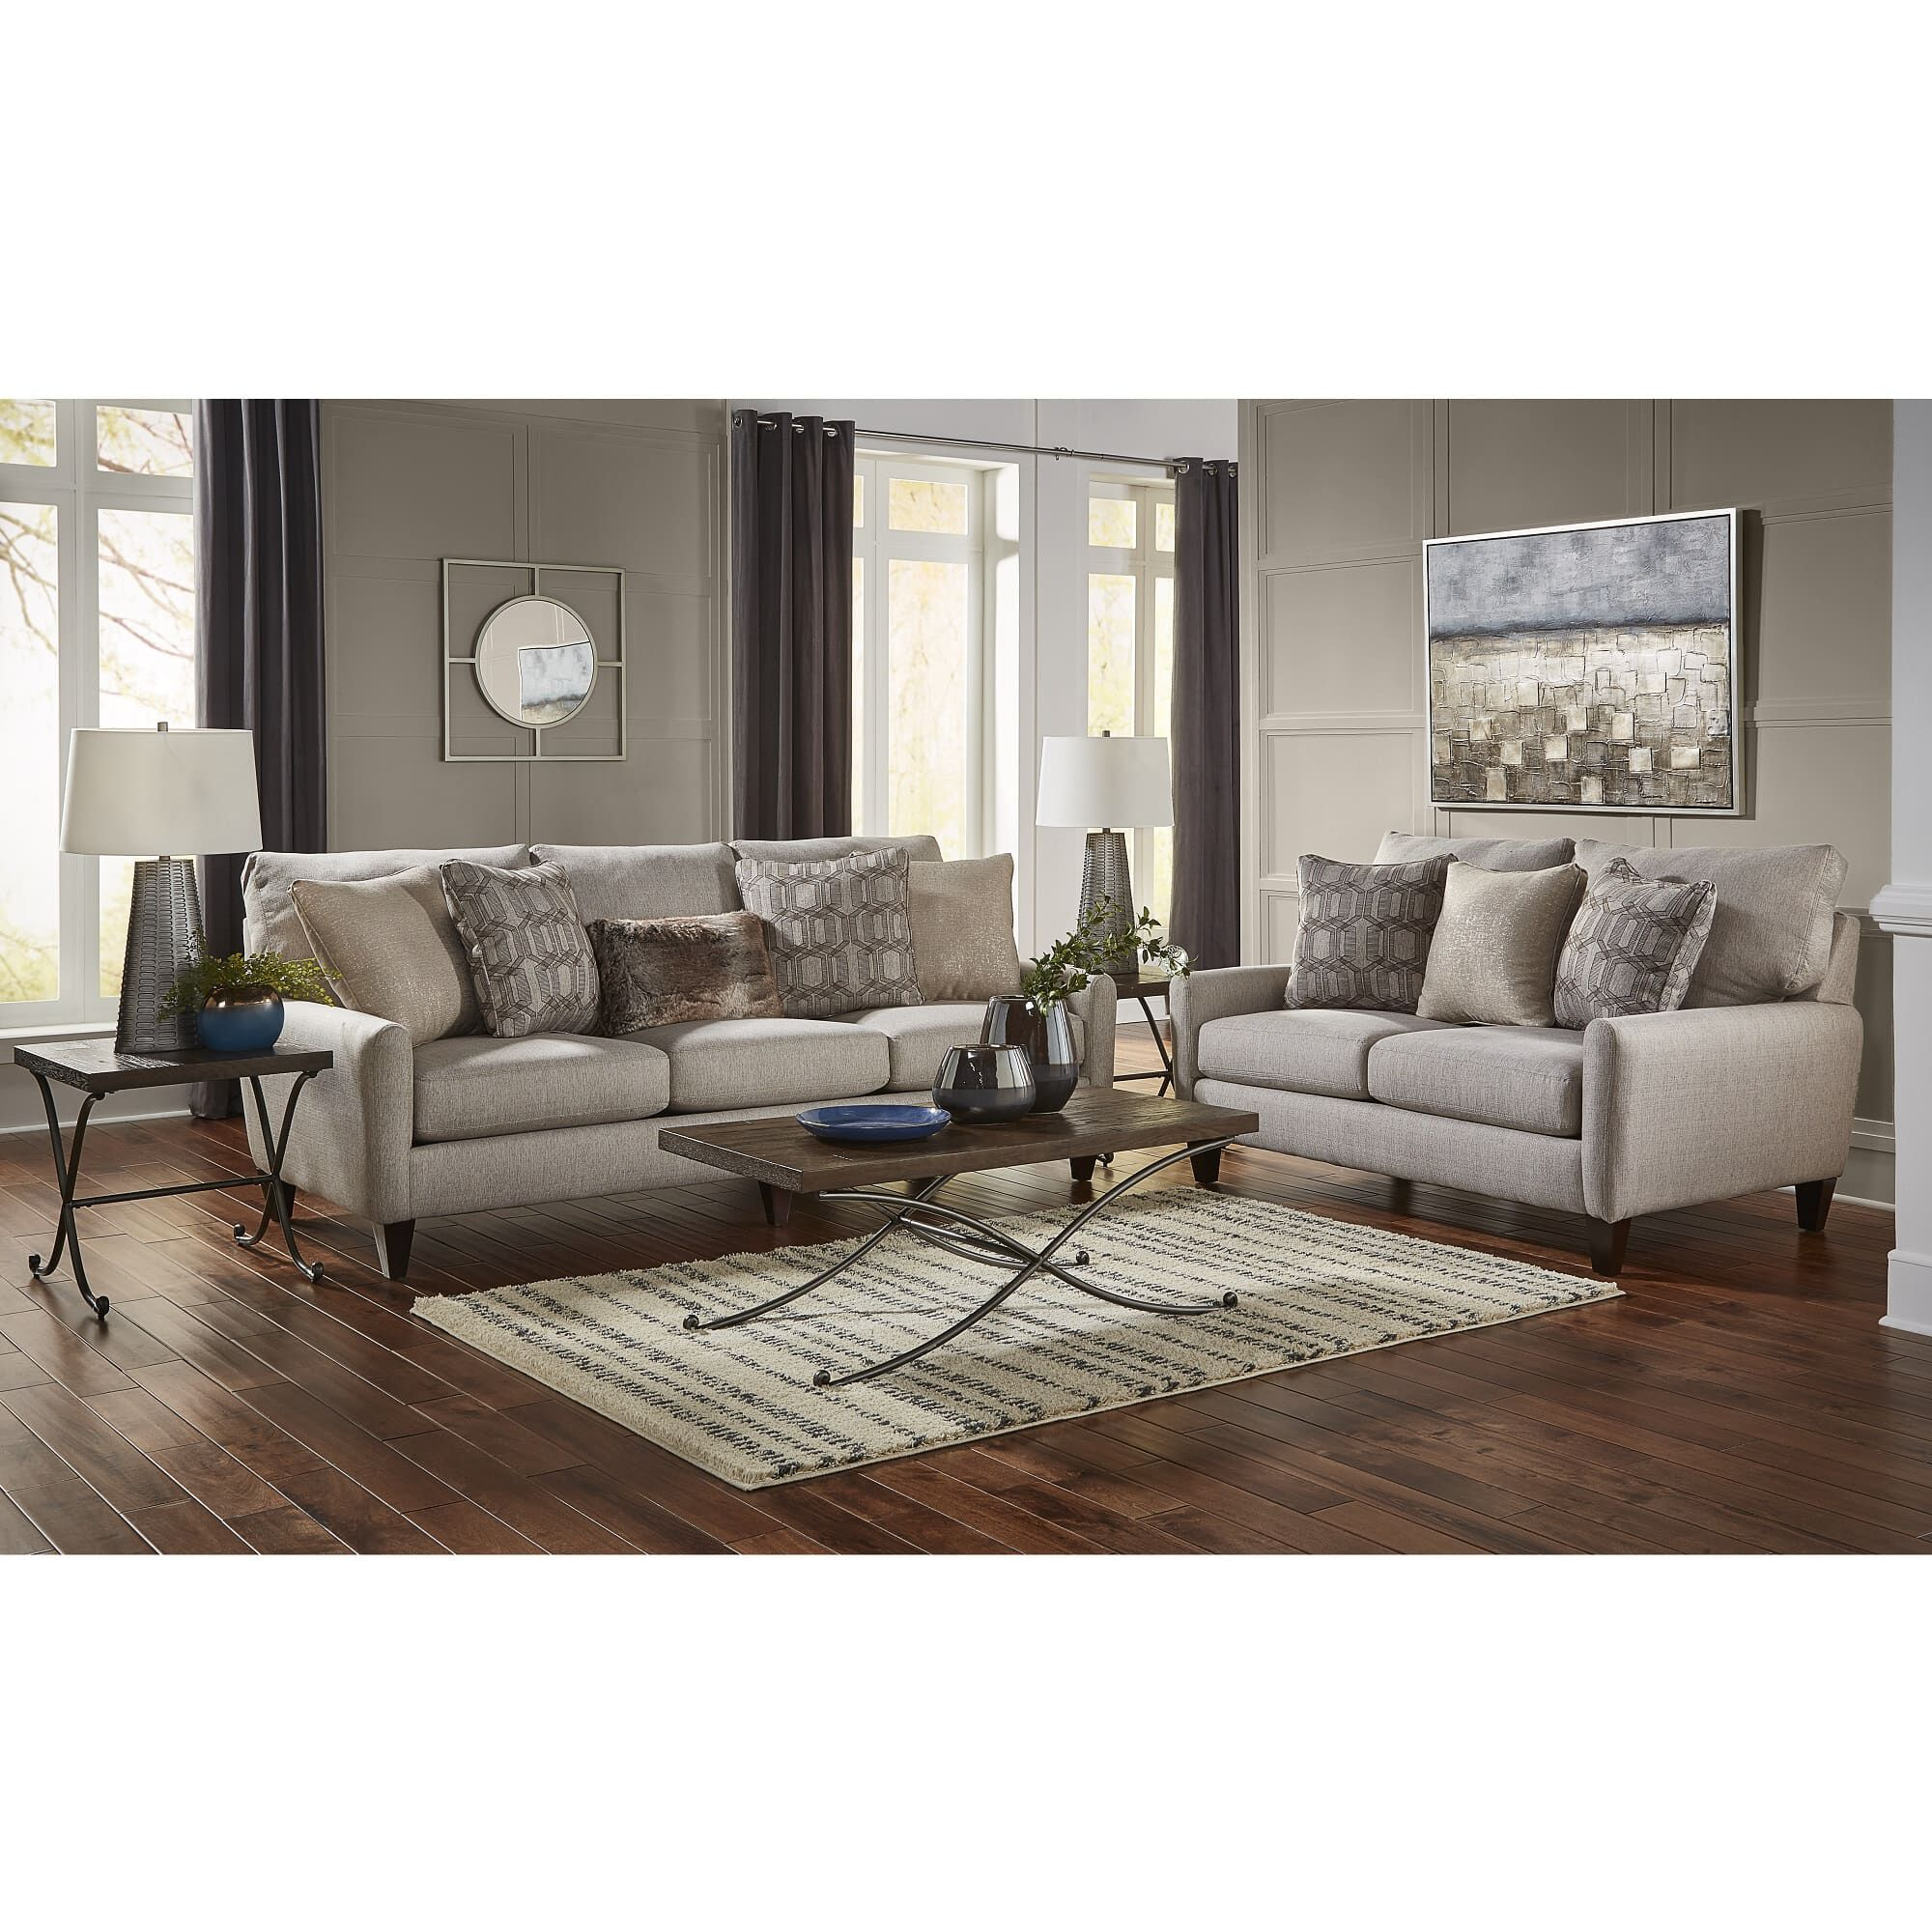 Rent to Own Living Room Furniture   Aaron s 7 Piece Ackland Living Room Collection